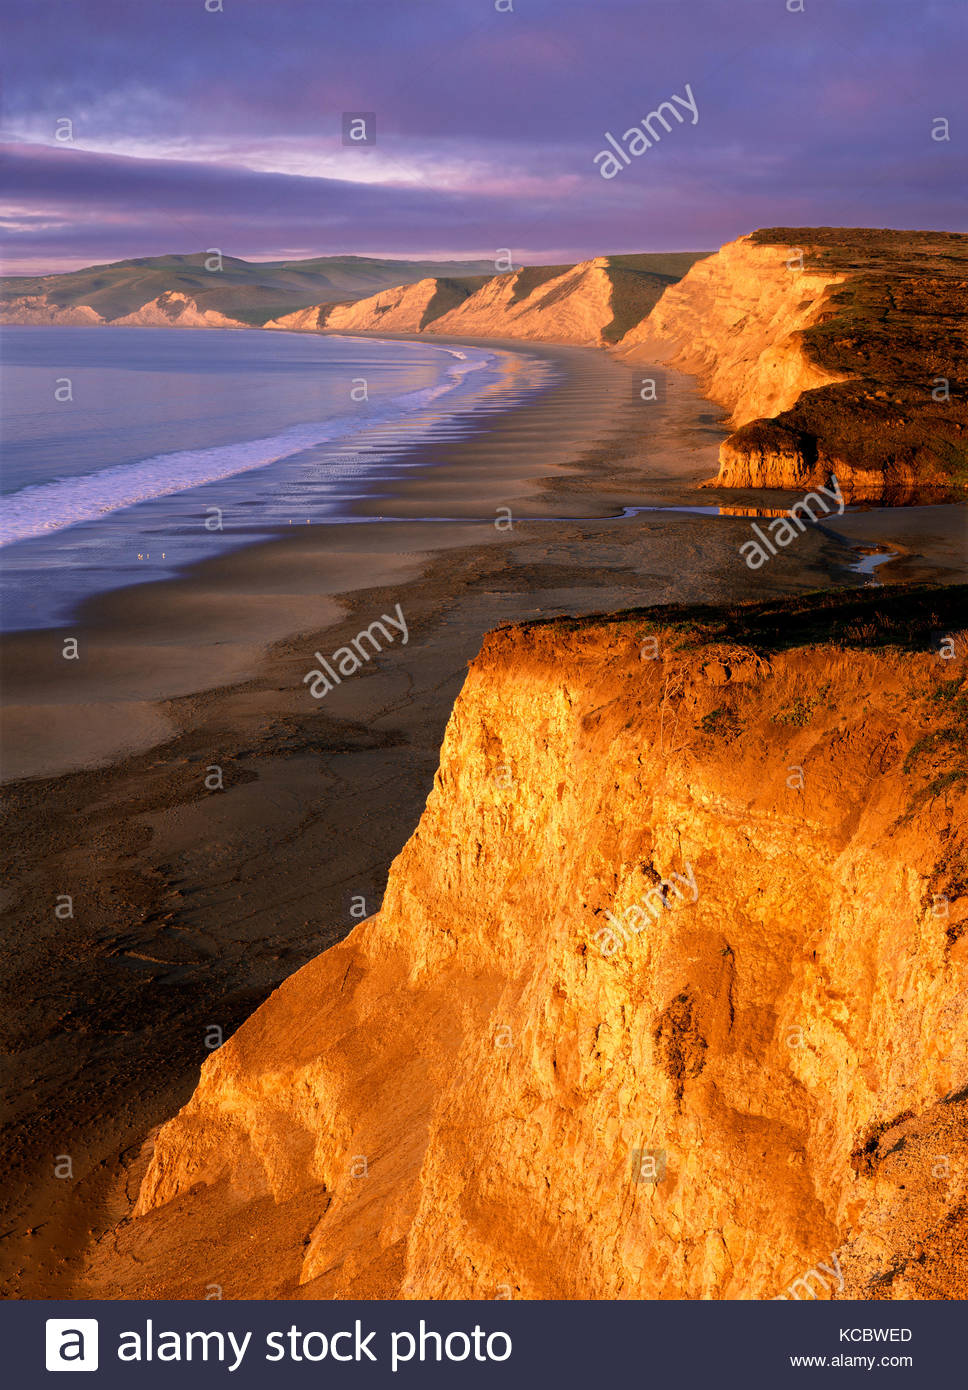 Amanecer en los dracos Beach, Point Reyes National Seashore, California Imagen De Stock